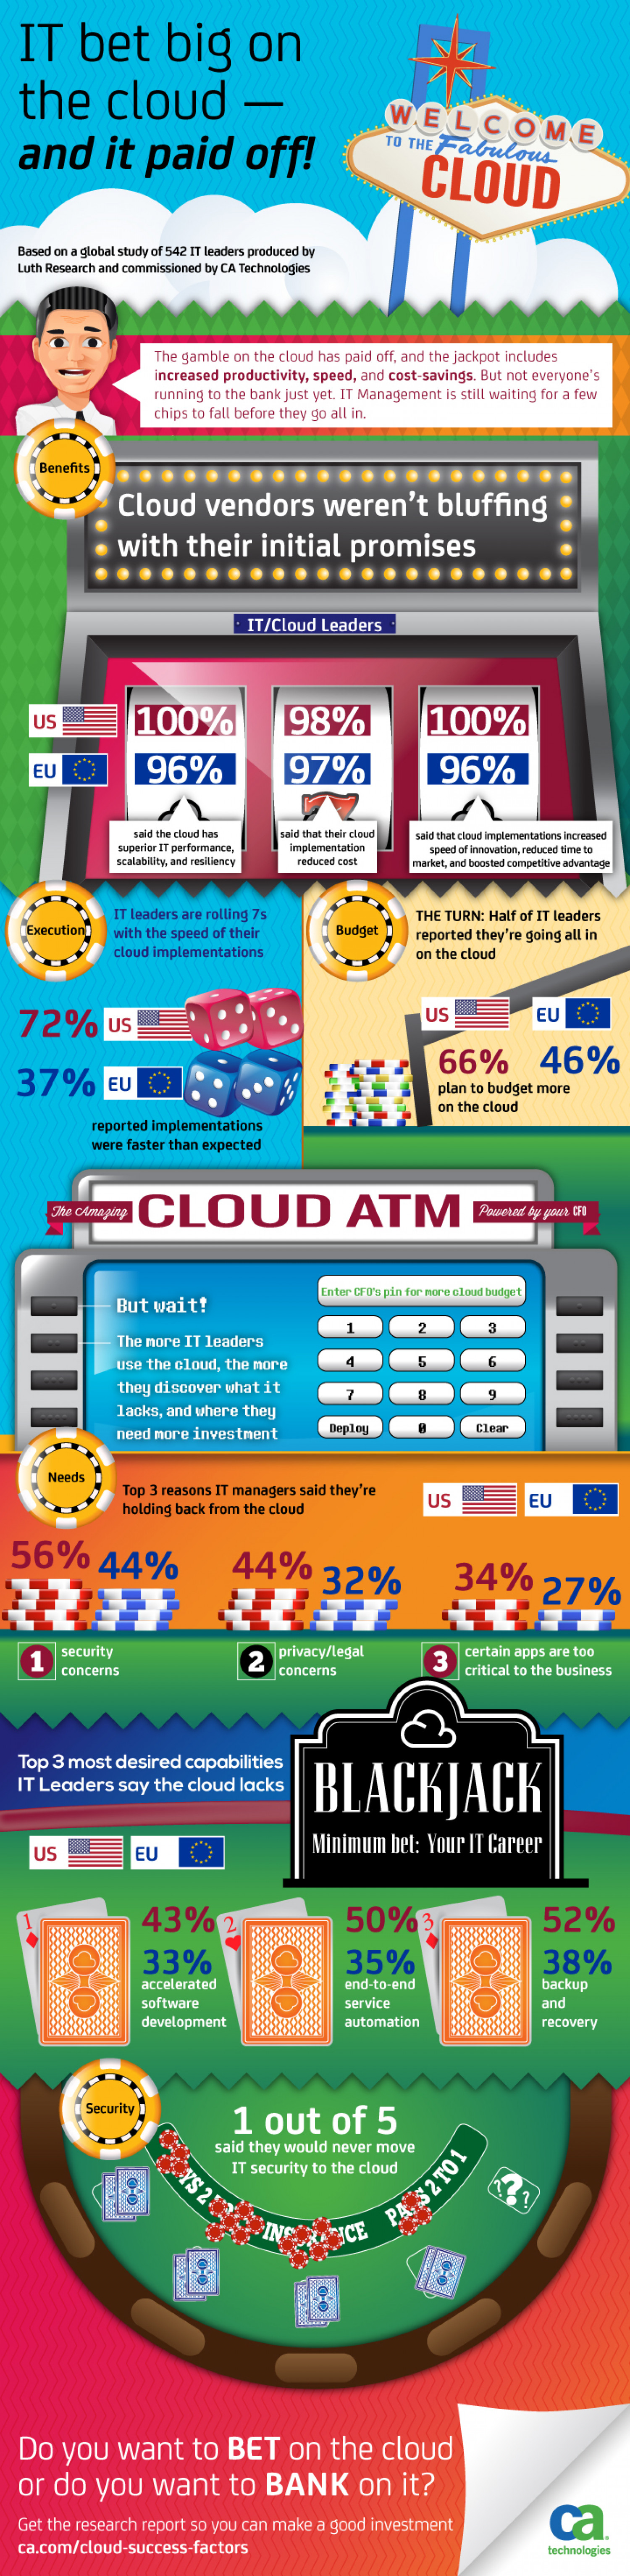 IT bet big on the cloud – and it paid off! Infographic